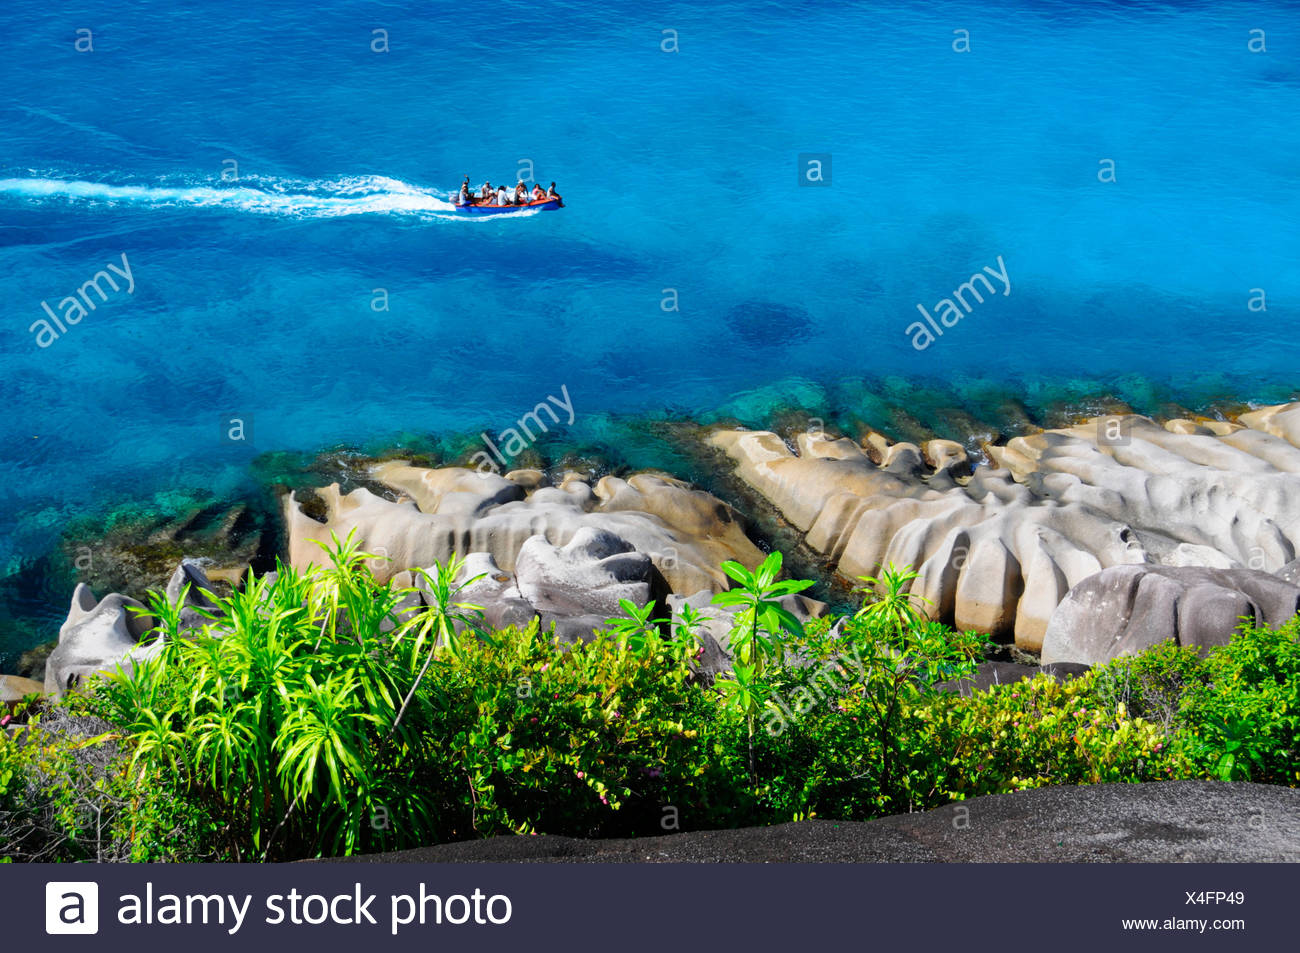 Granite rocks and tropical vegetation in front of a boat on the sea, northwest coast, Mahe, Seychelles - Stock Image